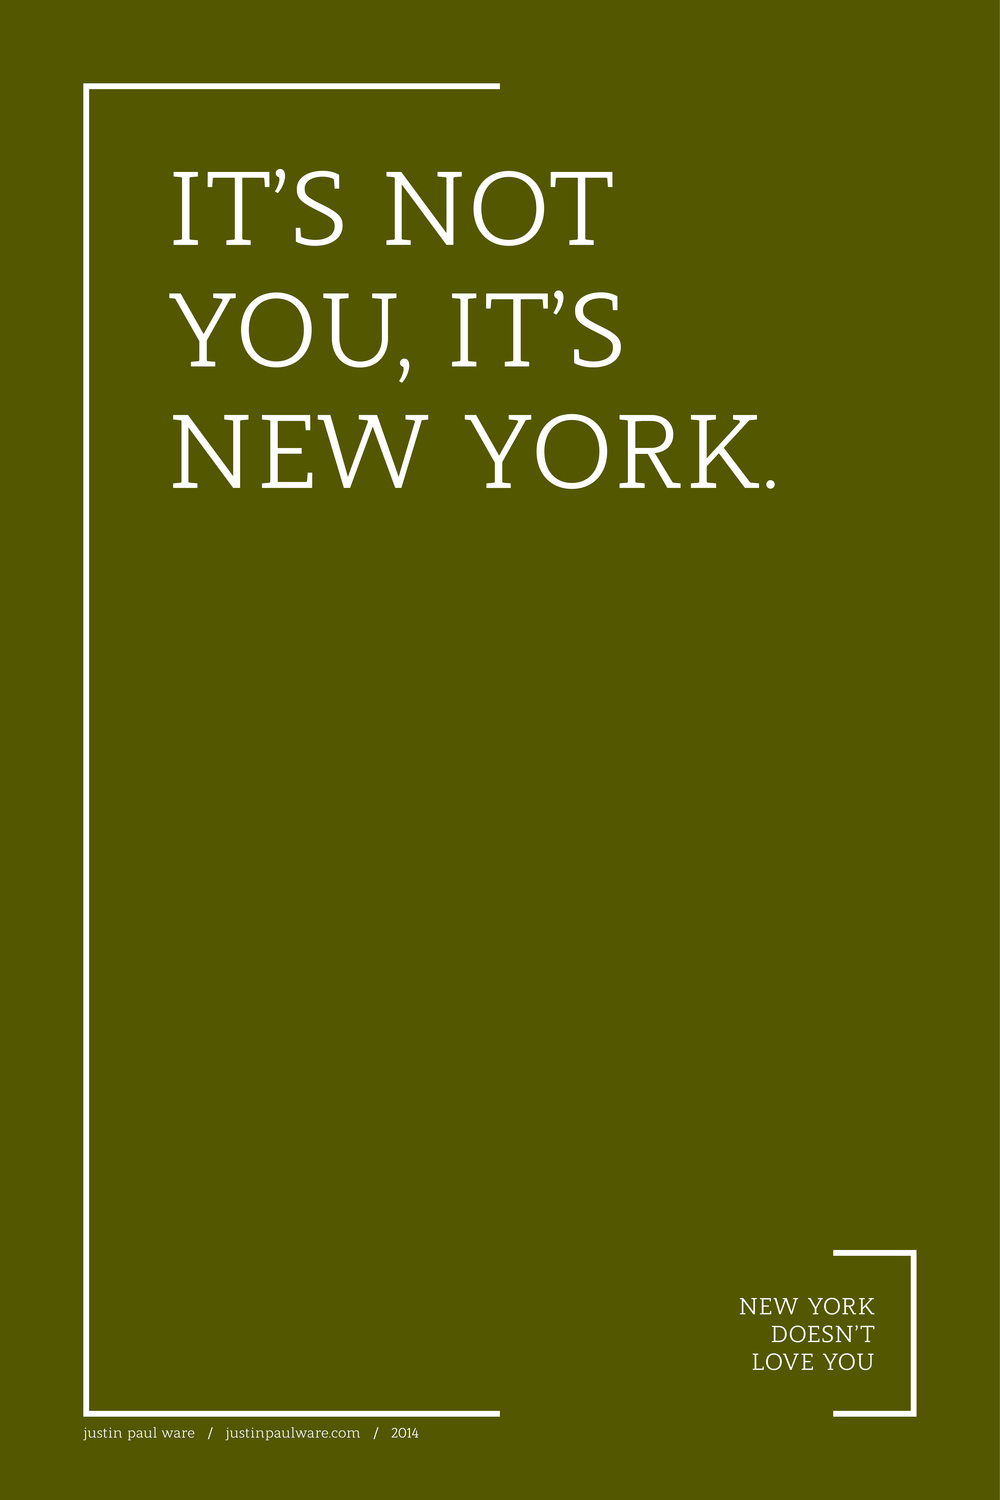 / new york doesn't love you